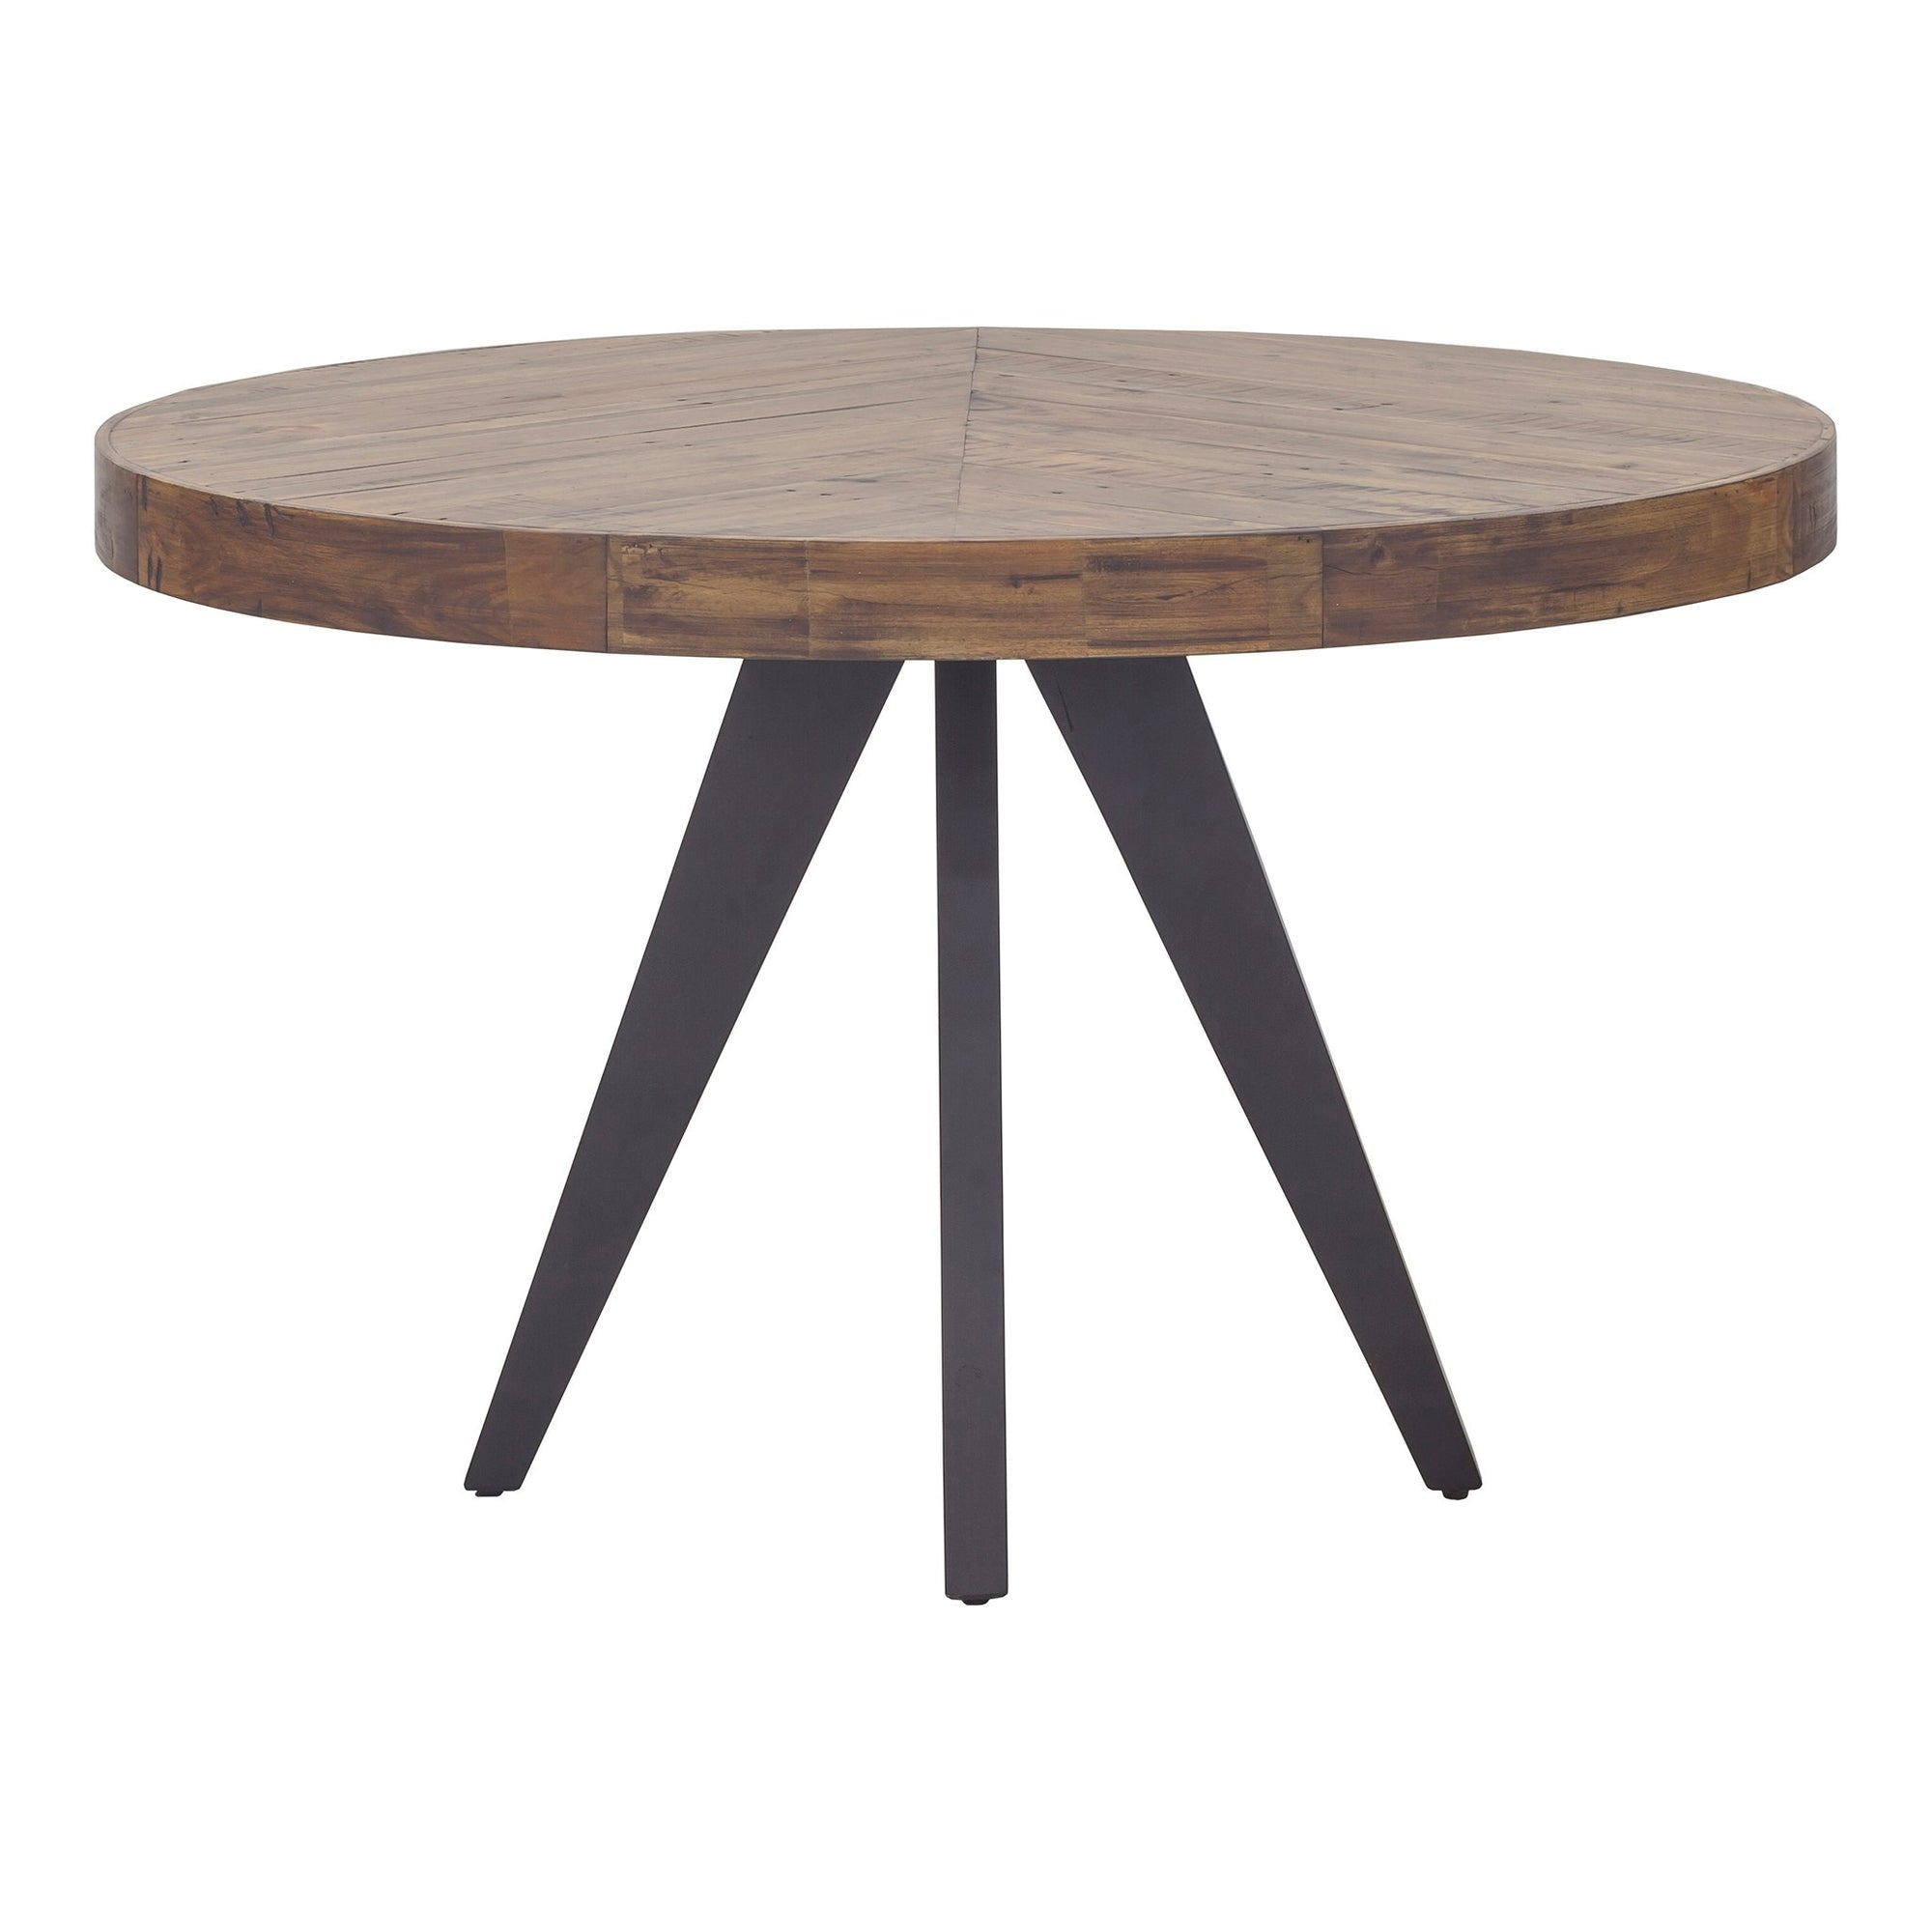 MOES-PARQ ROUND DINING TABLE-Dining Tables-MODTEMPO